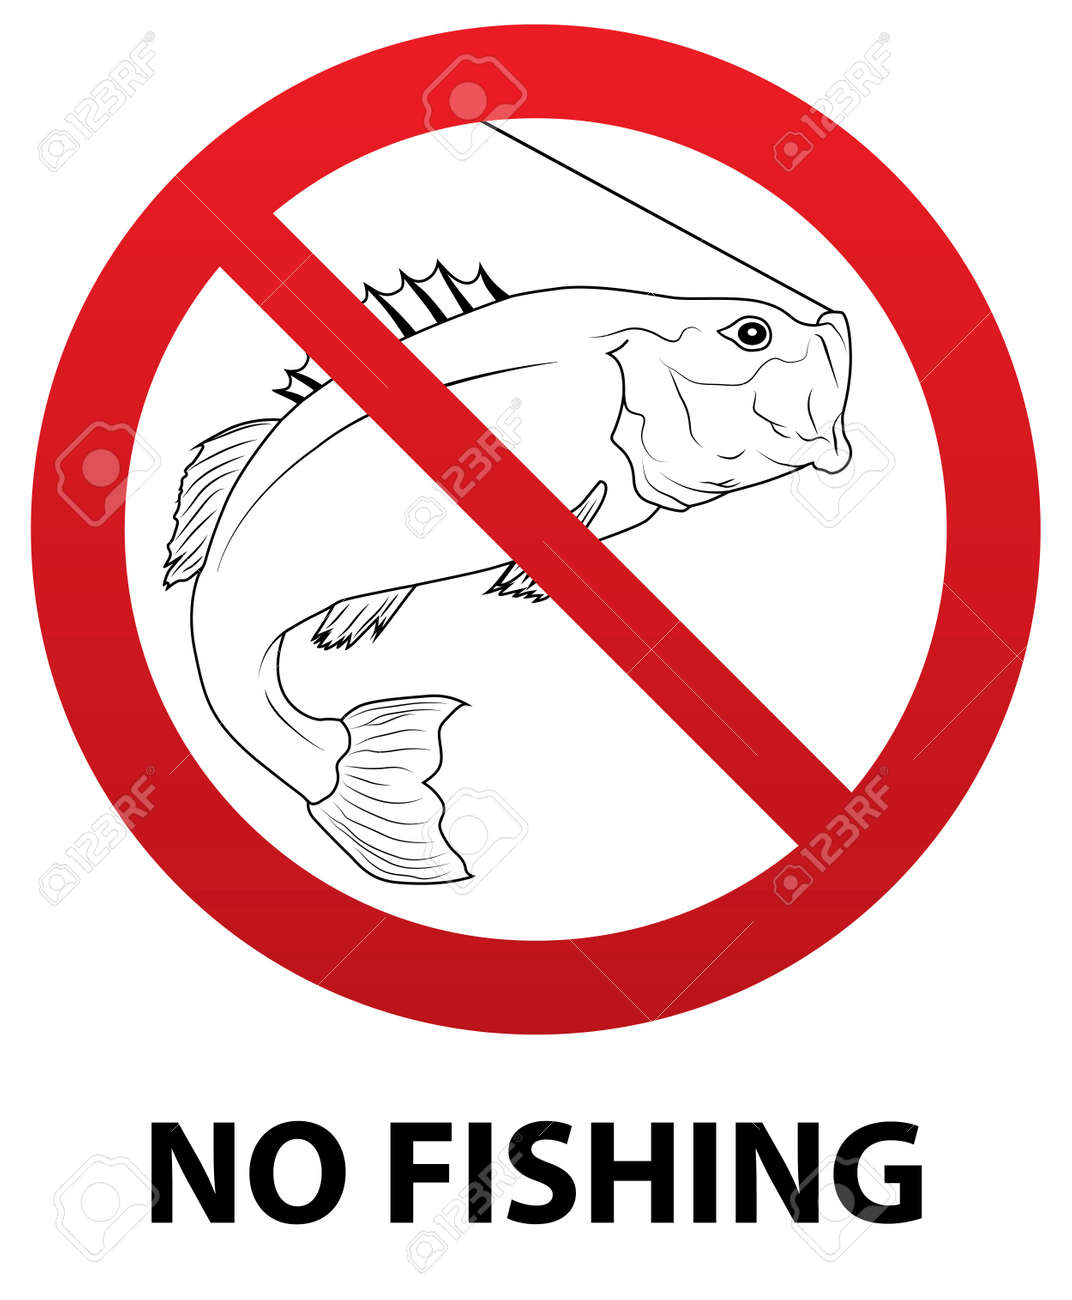 No Fishing Sign With Fish Outline Inside Royalty Free Cliparts ...